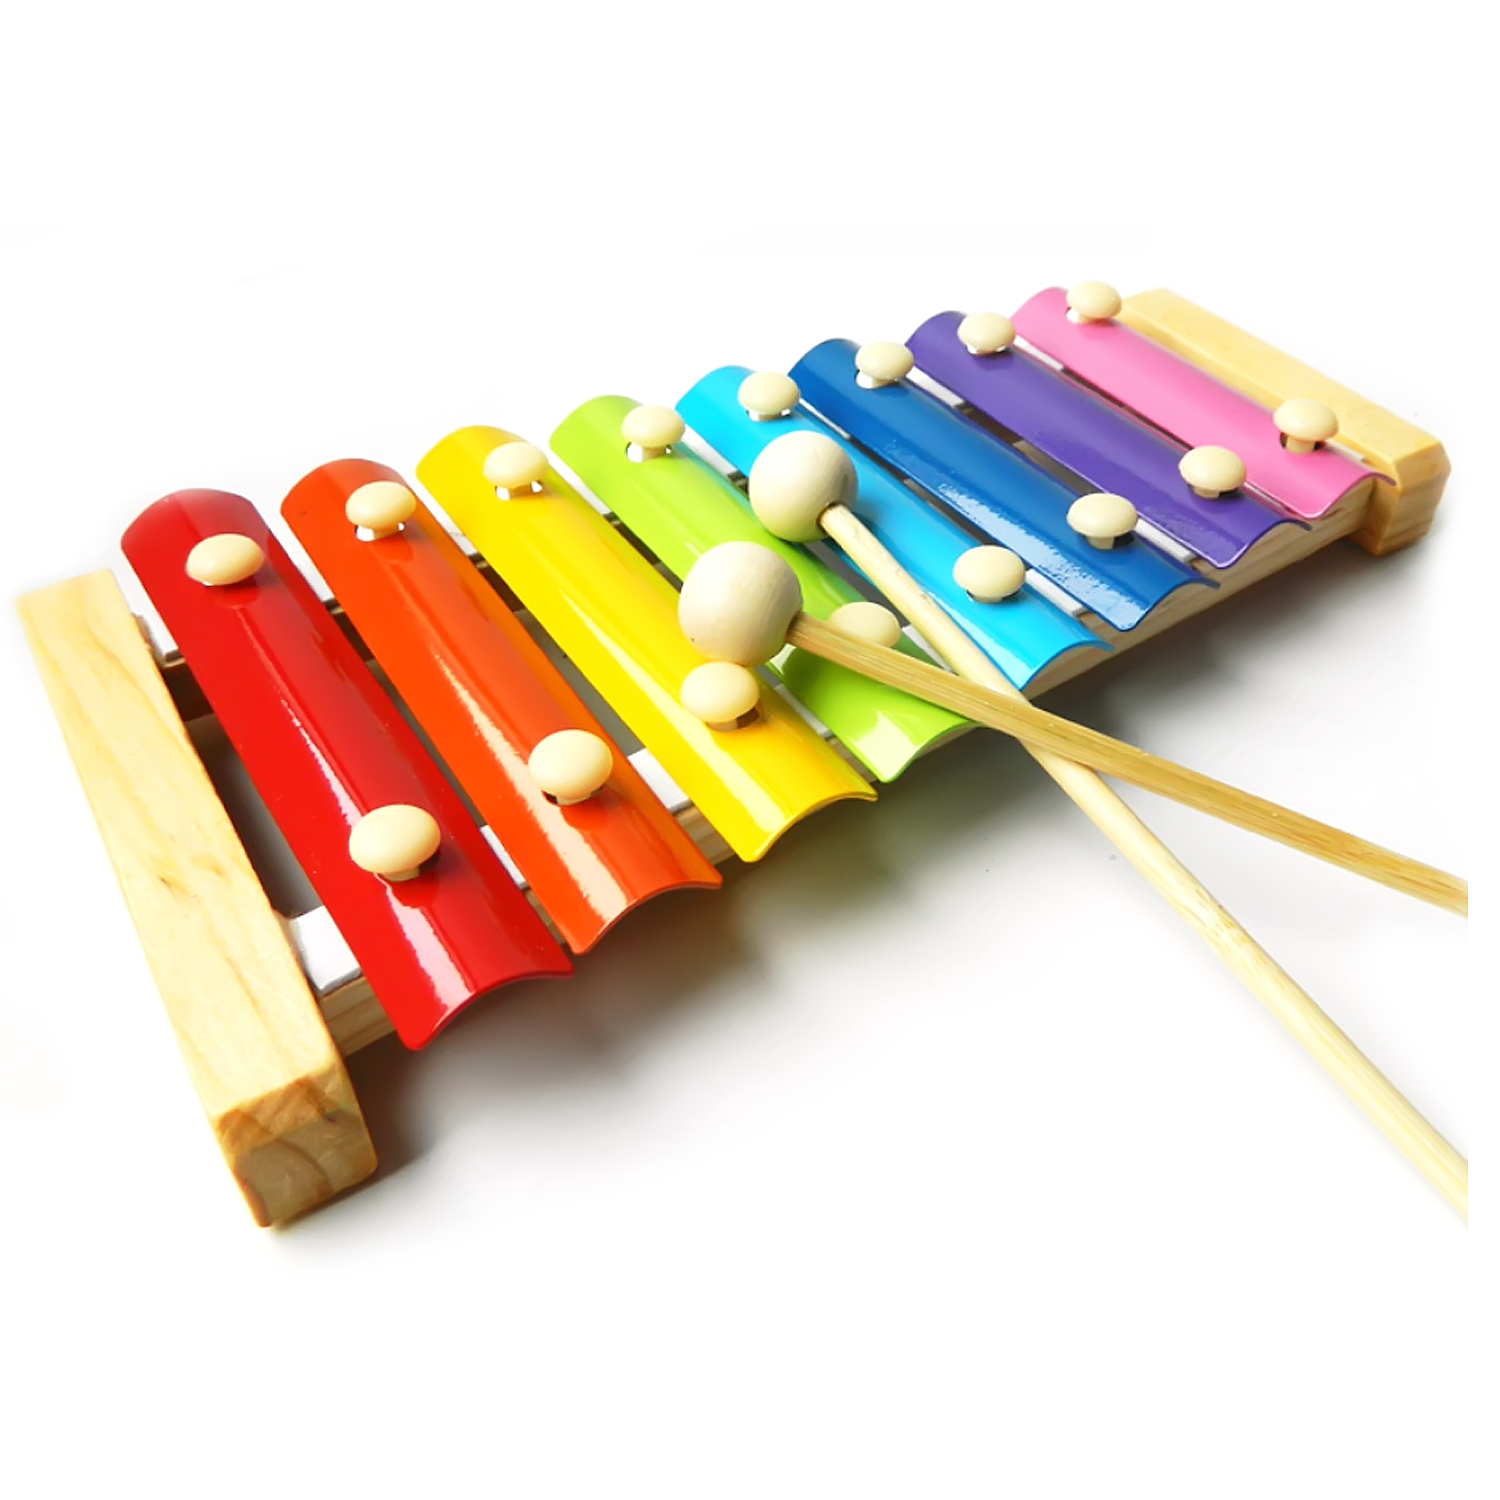 Xylophone Images - Reverse Search